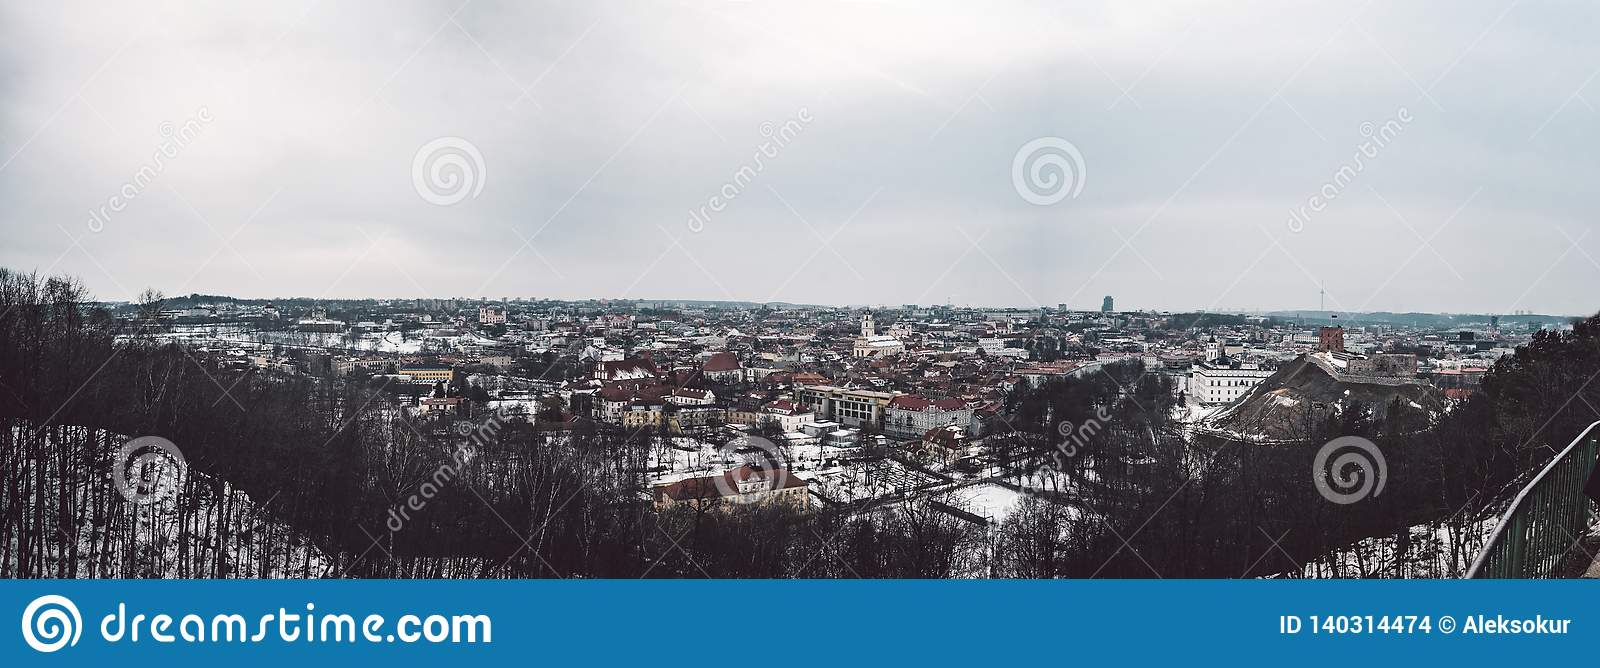 Vilnius old town panorama. Good view on city